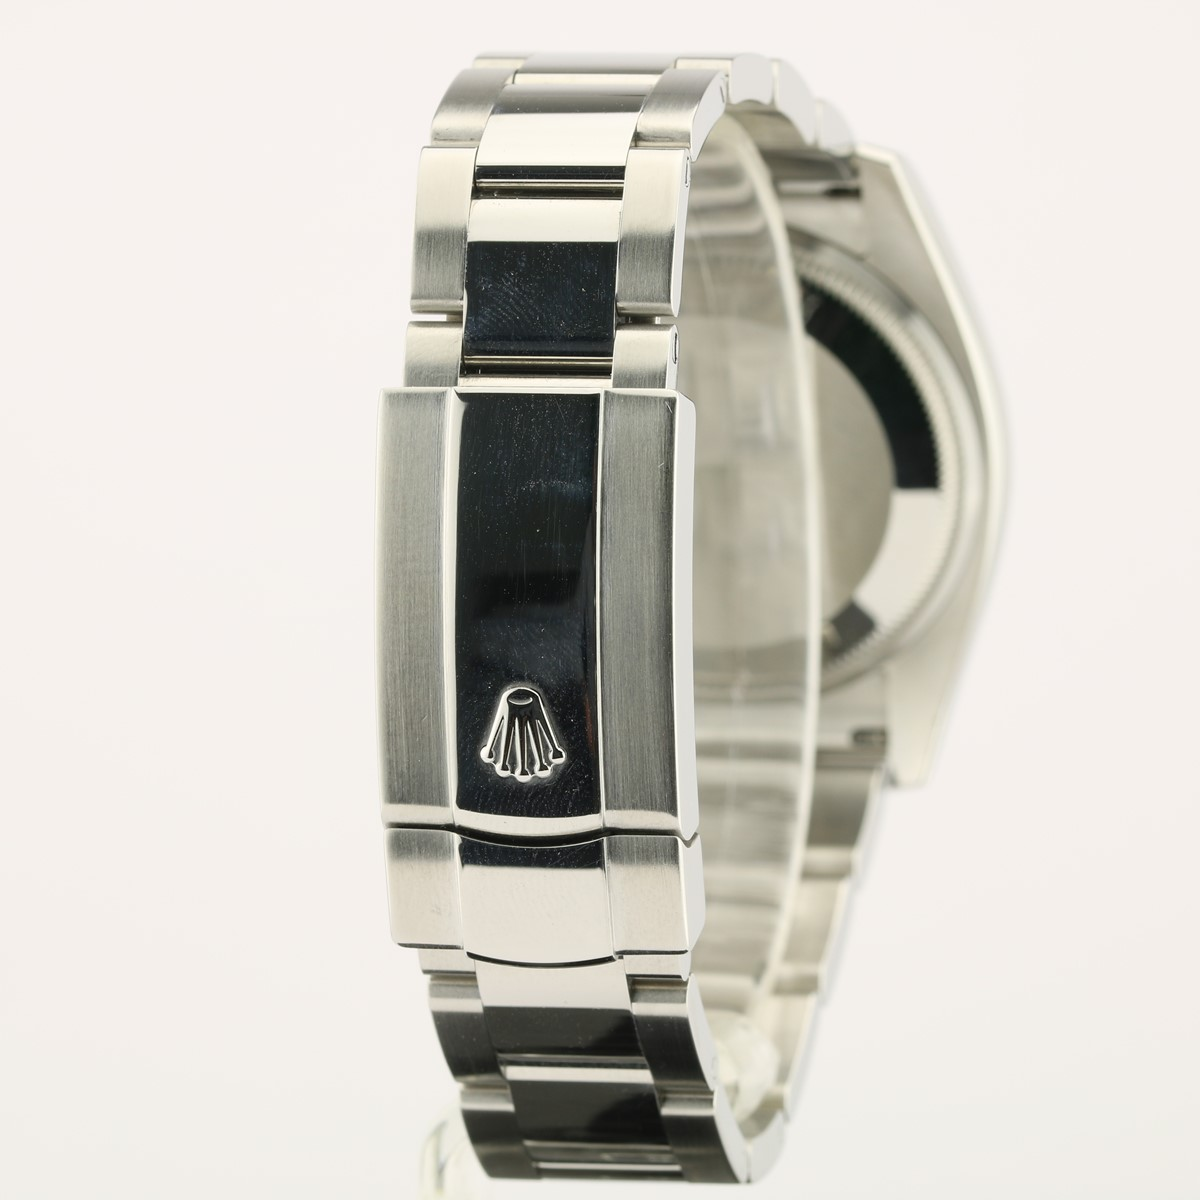 Rolex-oyster-115200